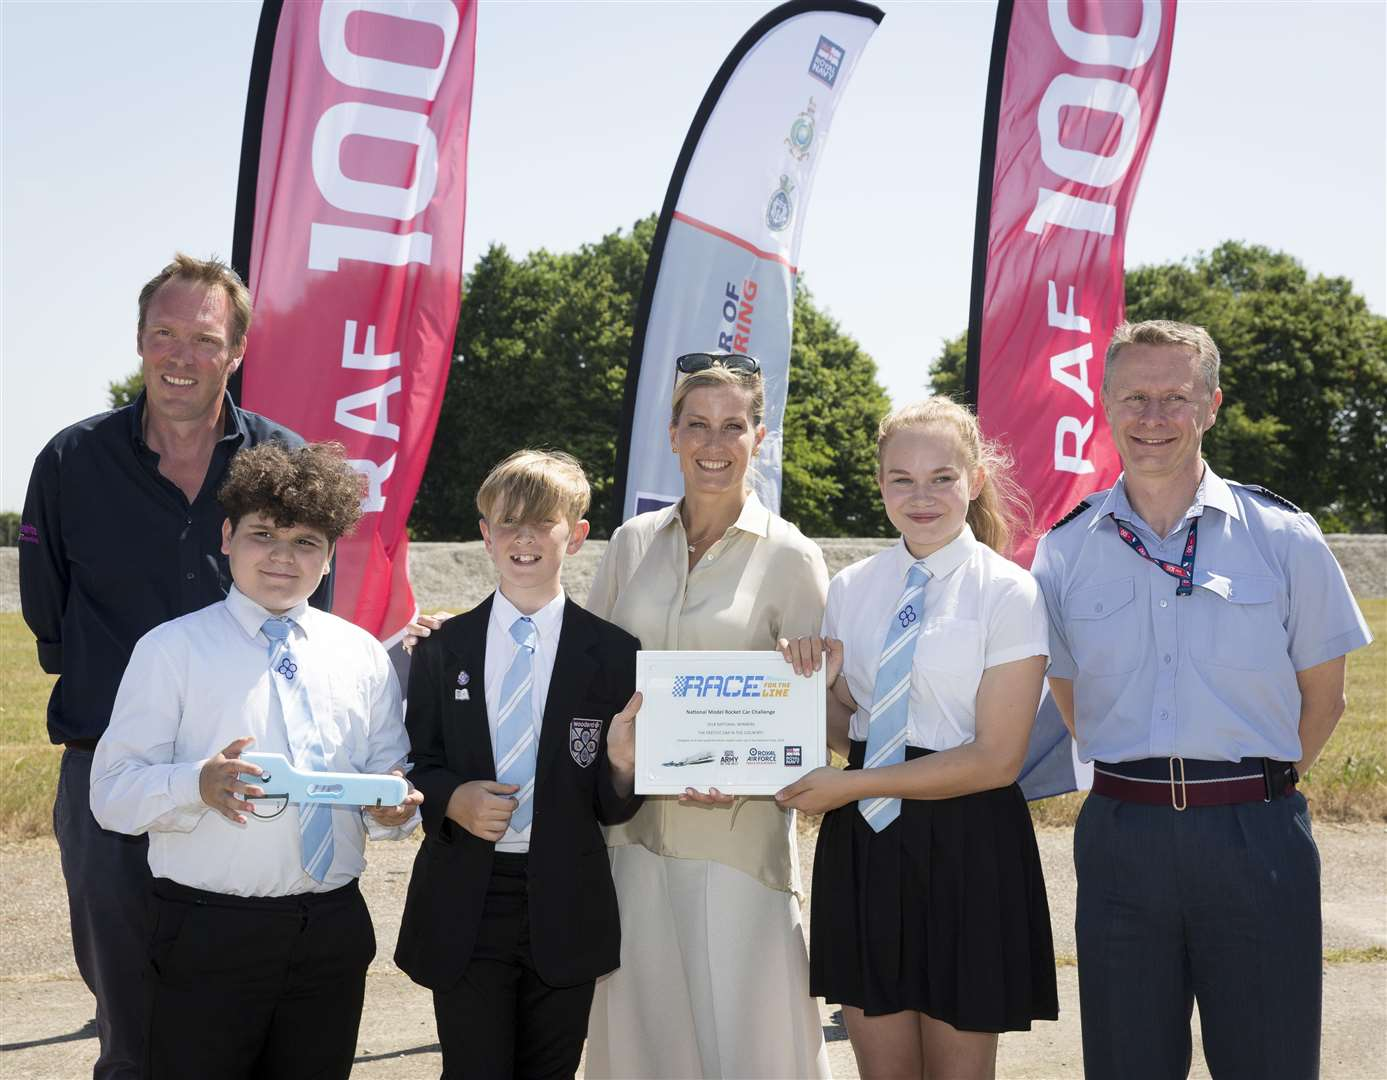 Aulden Dunipace, left, the Countess of Wessex, centre, and Group Captain Tony Keeling, right, with the winning team from Littlehampton Academy